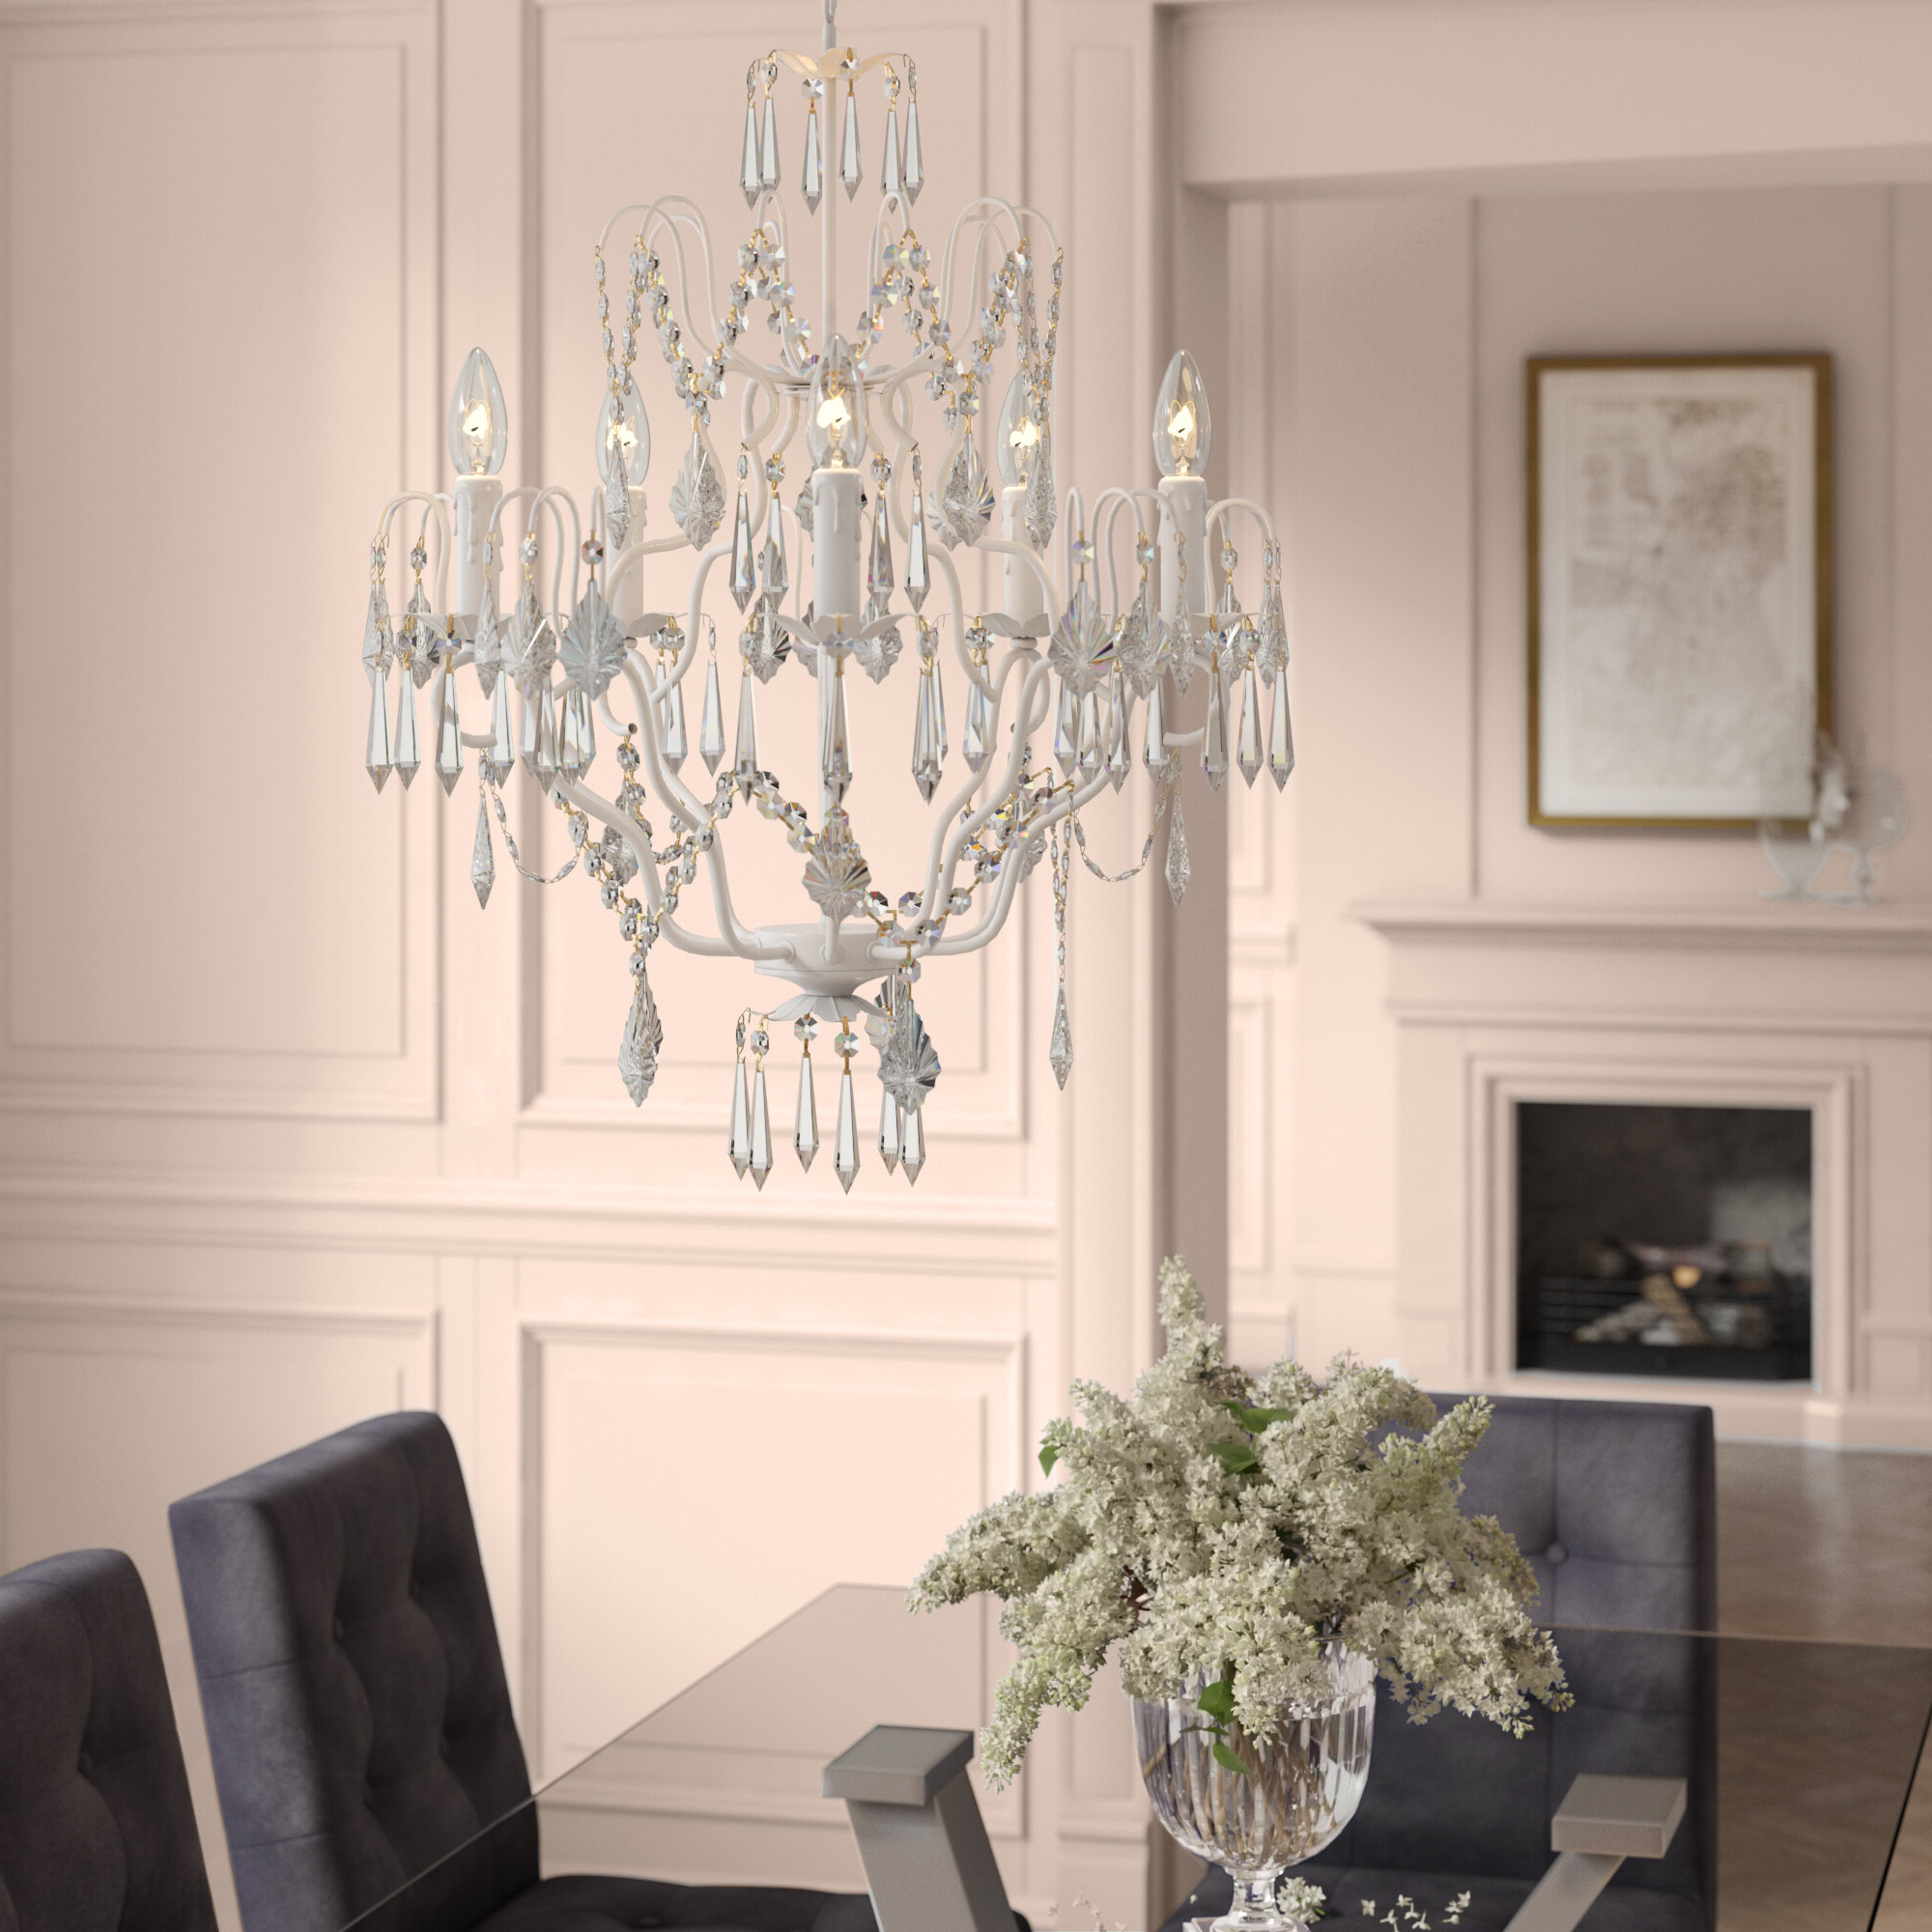 Clemence 5 Light Candle Style Chandelier Intended For Well Known Hesse 5 Light Candle Style Chandeliers (View 4 of 25)